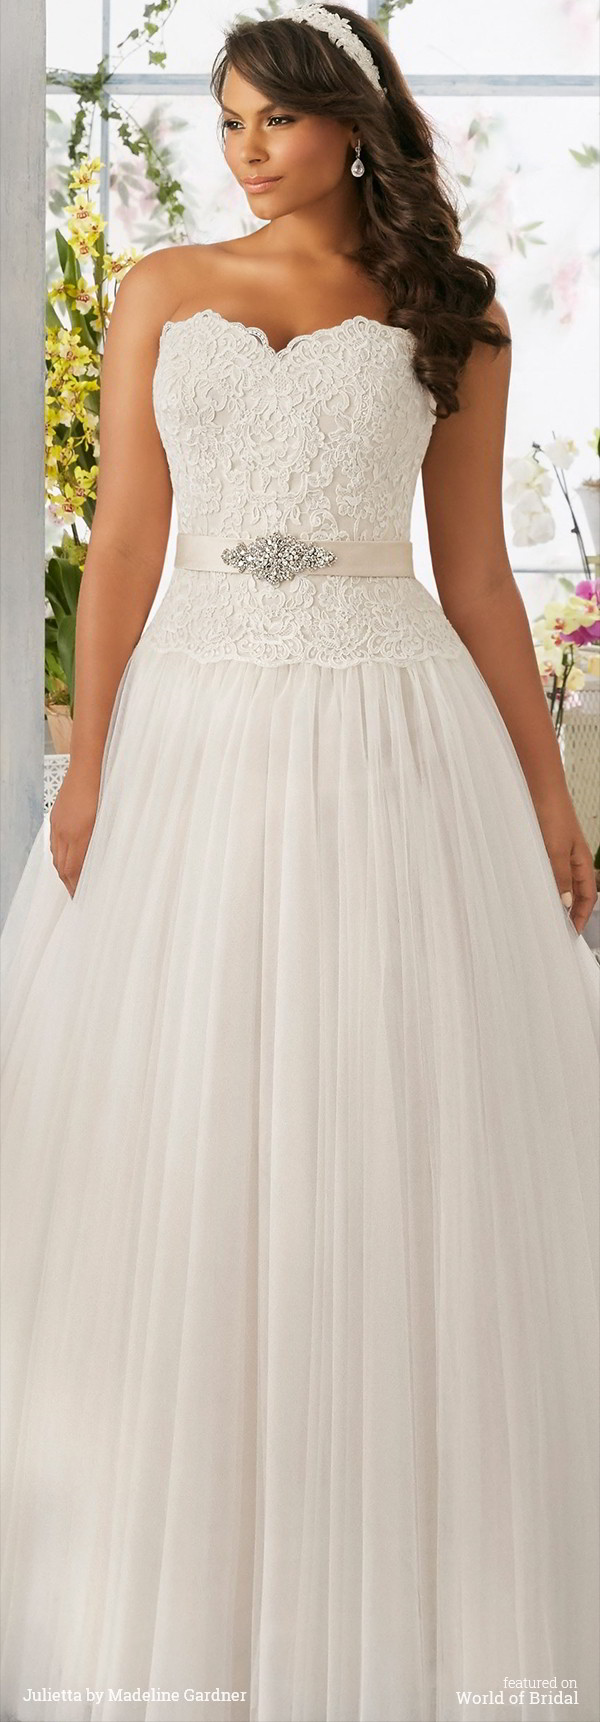 Julietta Spring 2016 Plus Size Wedding Dresses | World of Bridal